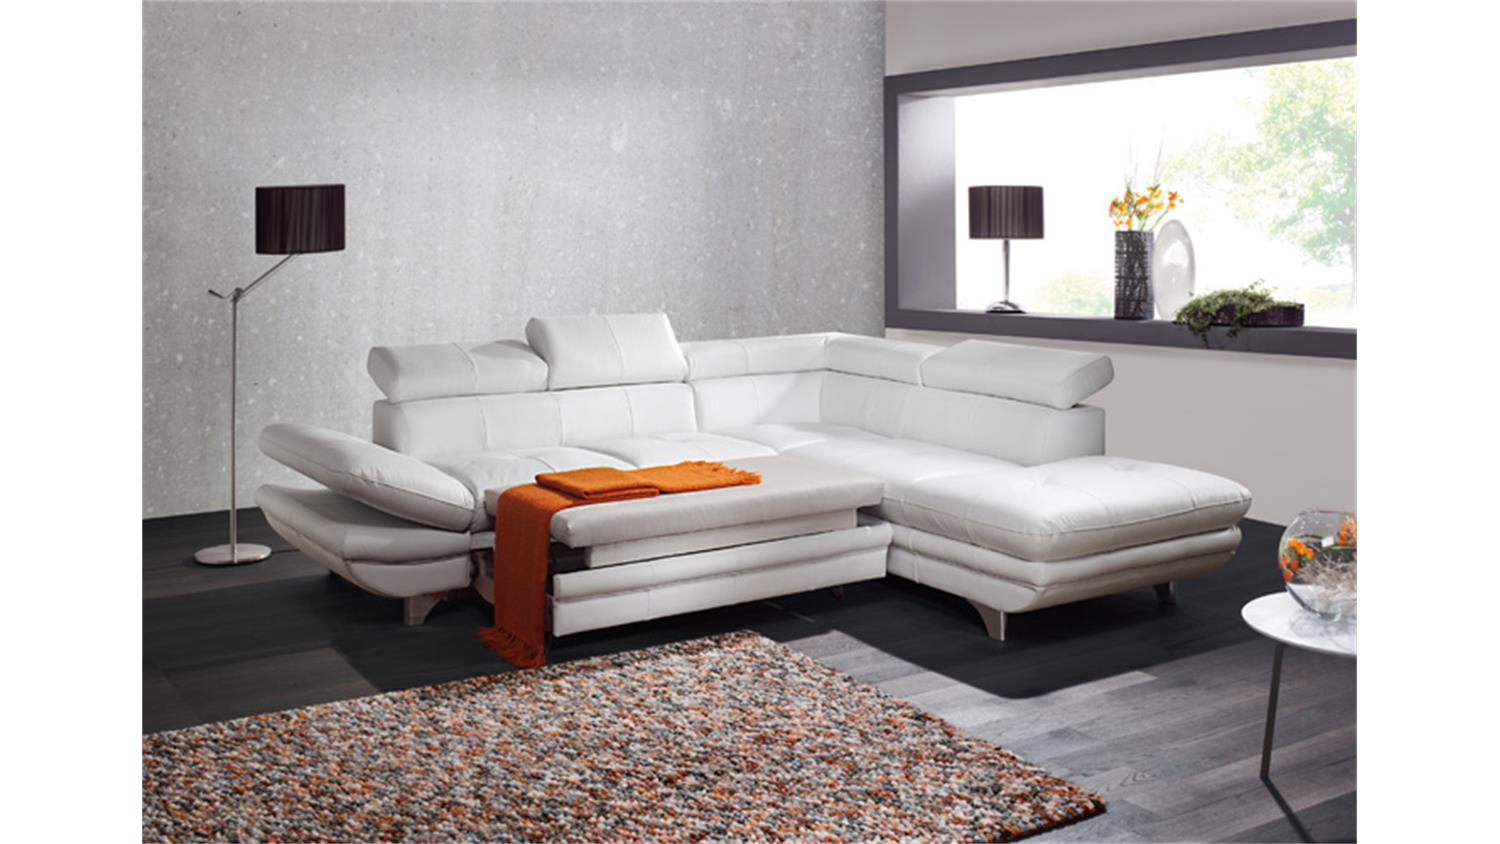 Ecksofa Energy Ecksofa Enterprise Sofa Wohnlandschaft Weiß Bettfunktion